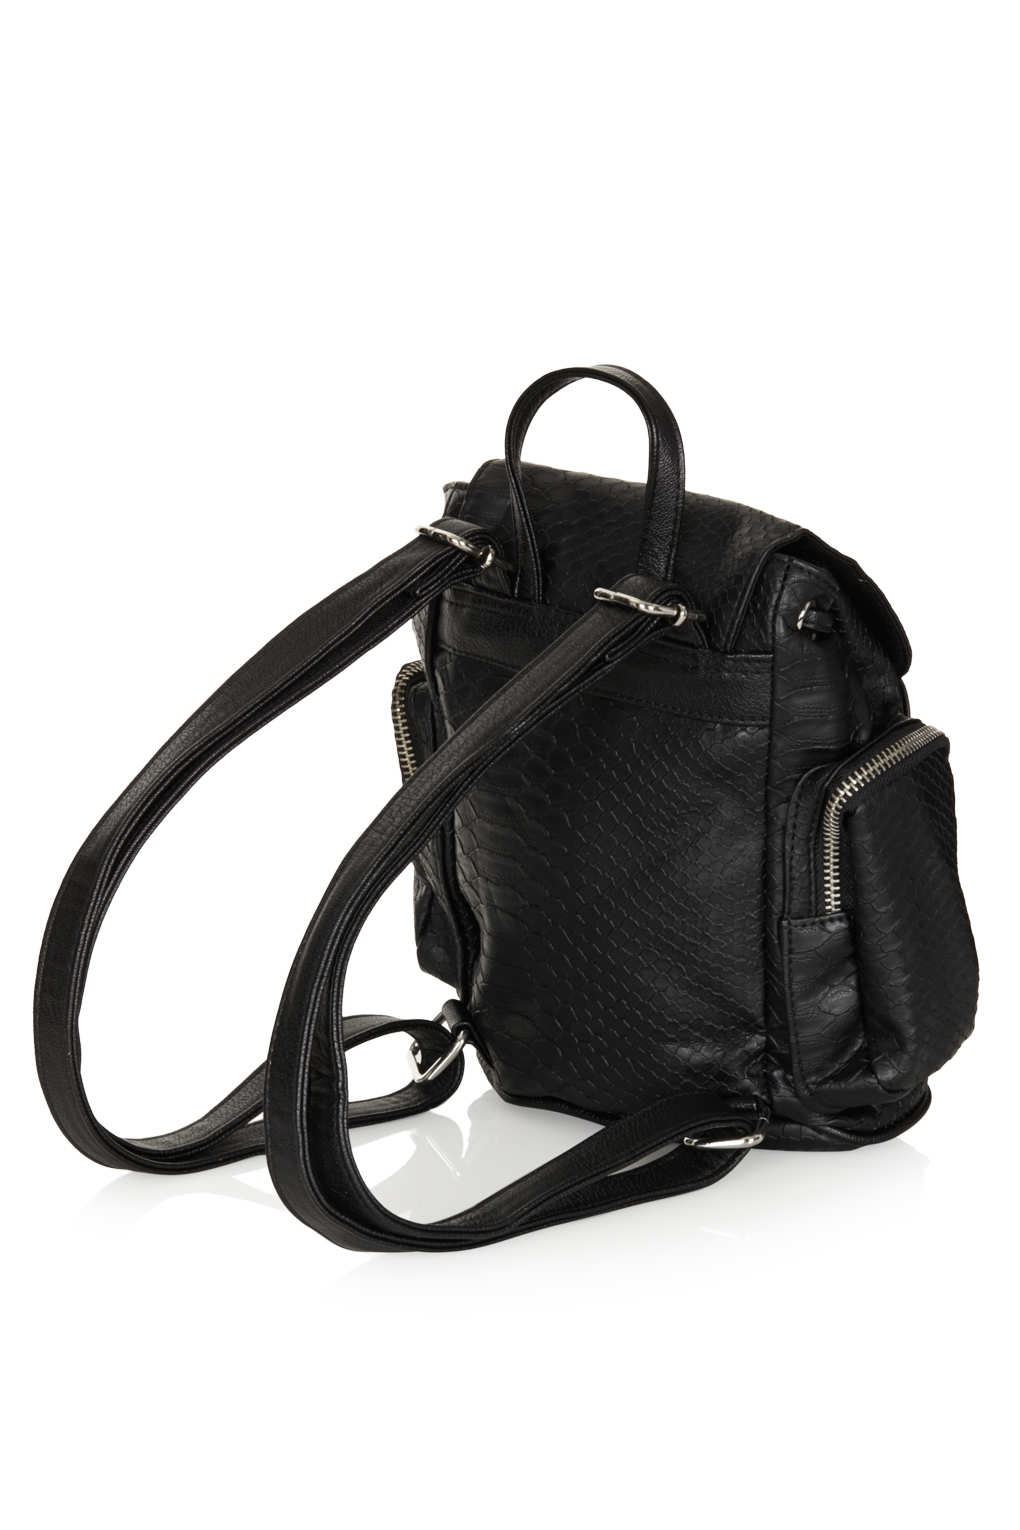 6d7302adfc Lyst - TOPSHOP Mini Snake Zippy Backpack in Black